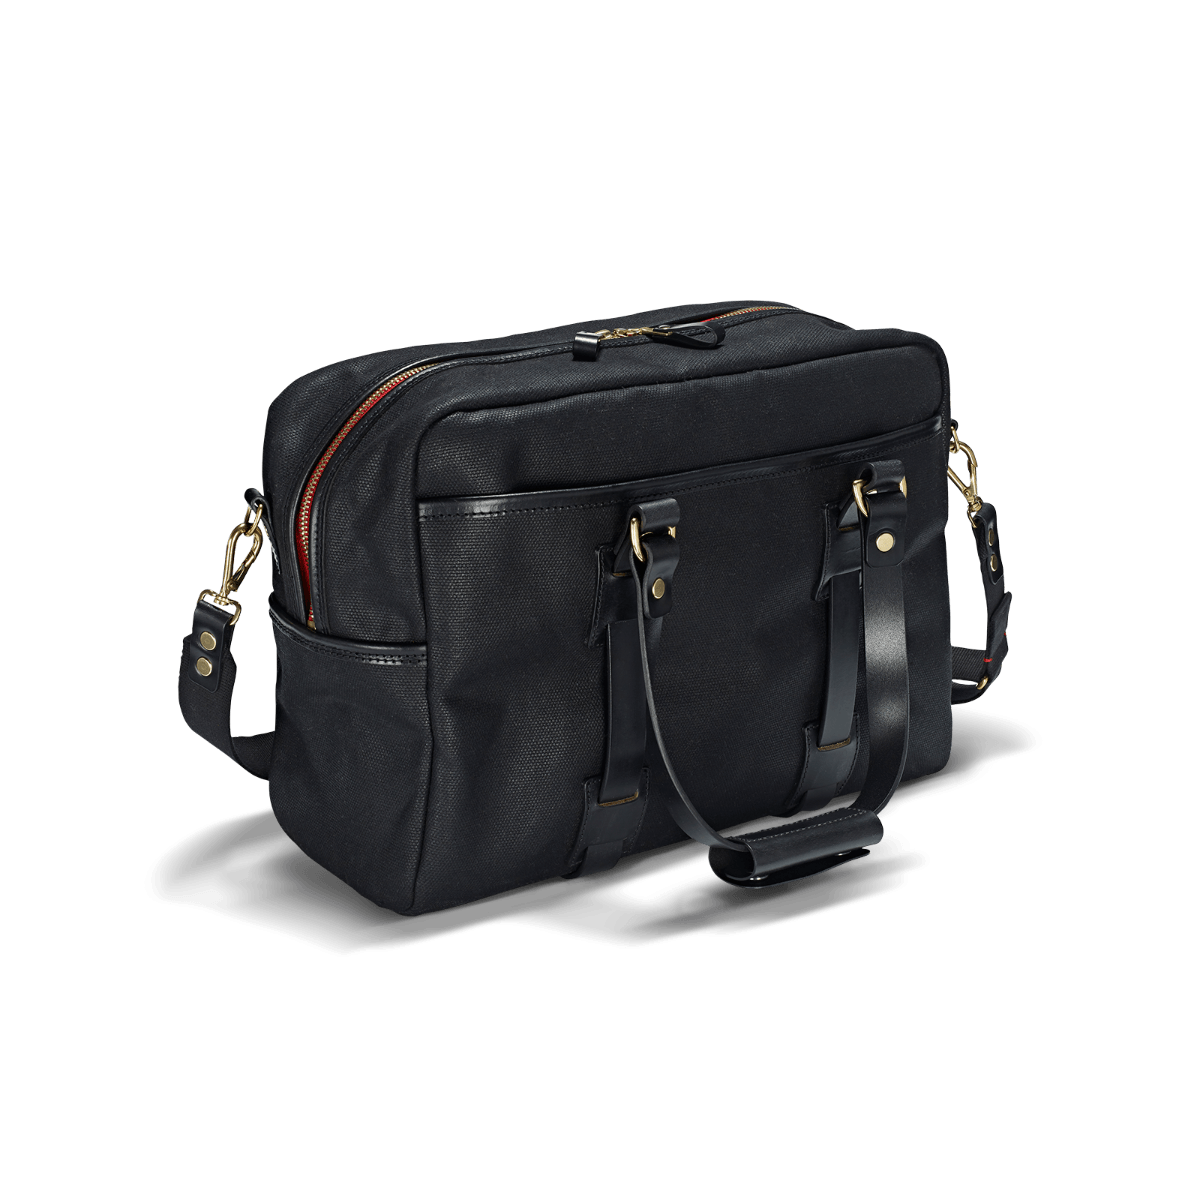 CROOTS Vintage Traveller Bag, kanvas, sort